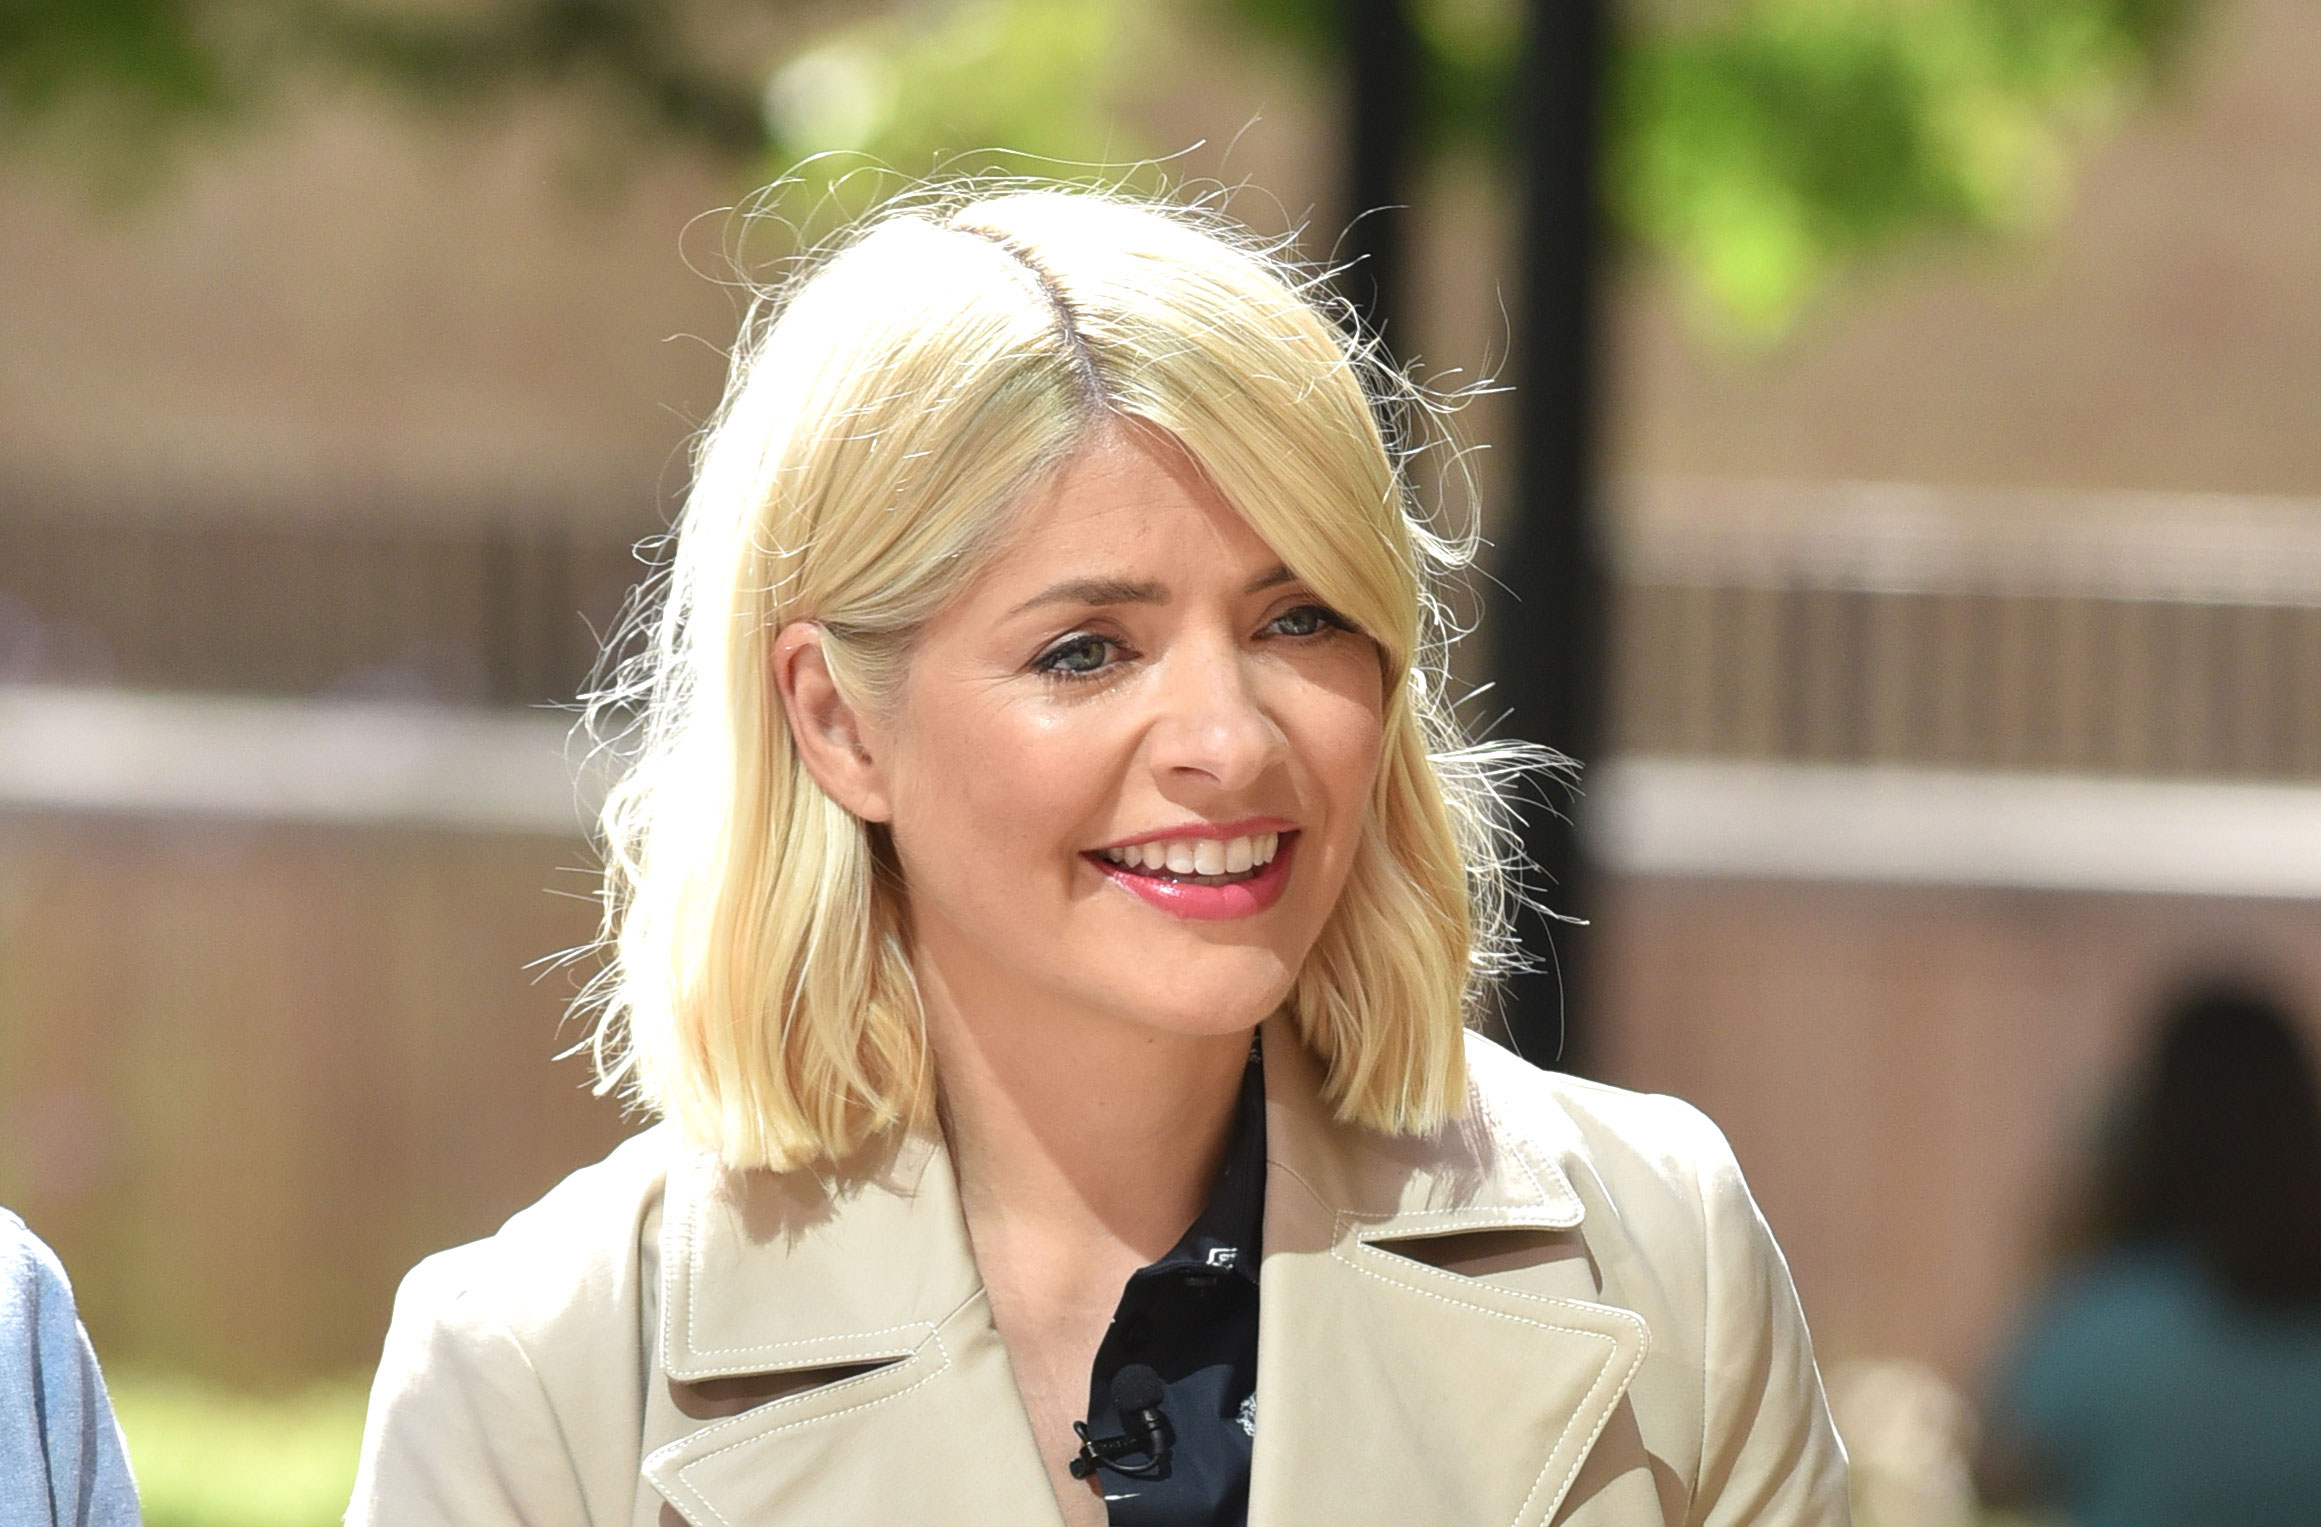 Holly Willoughby shares hilarious details of disastrous family day at home